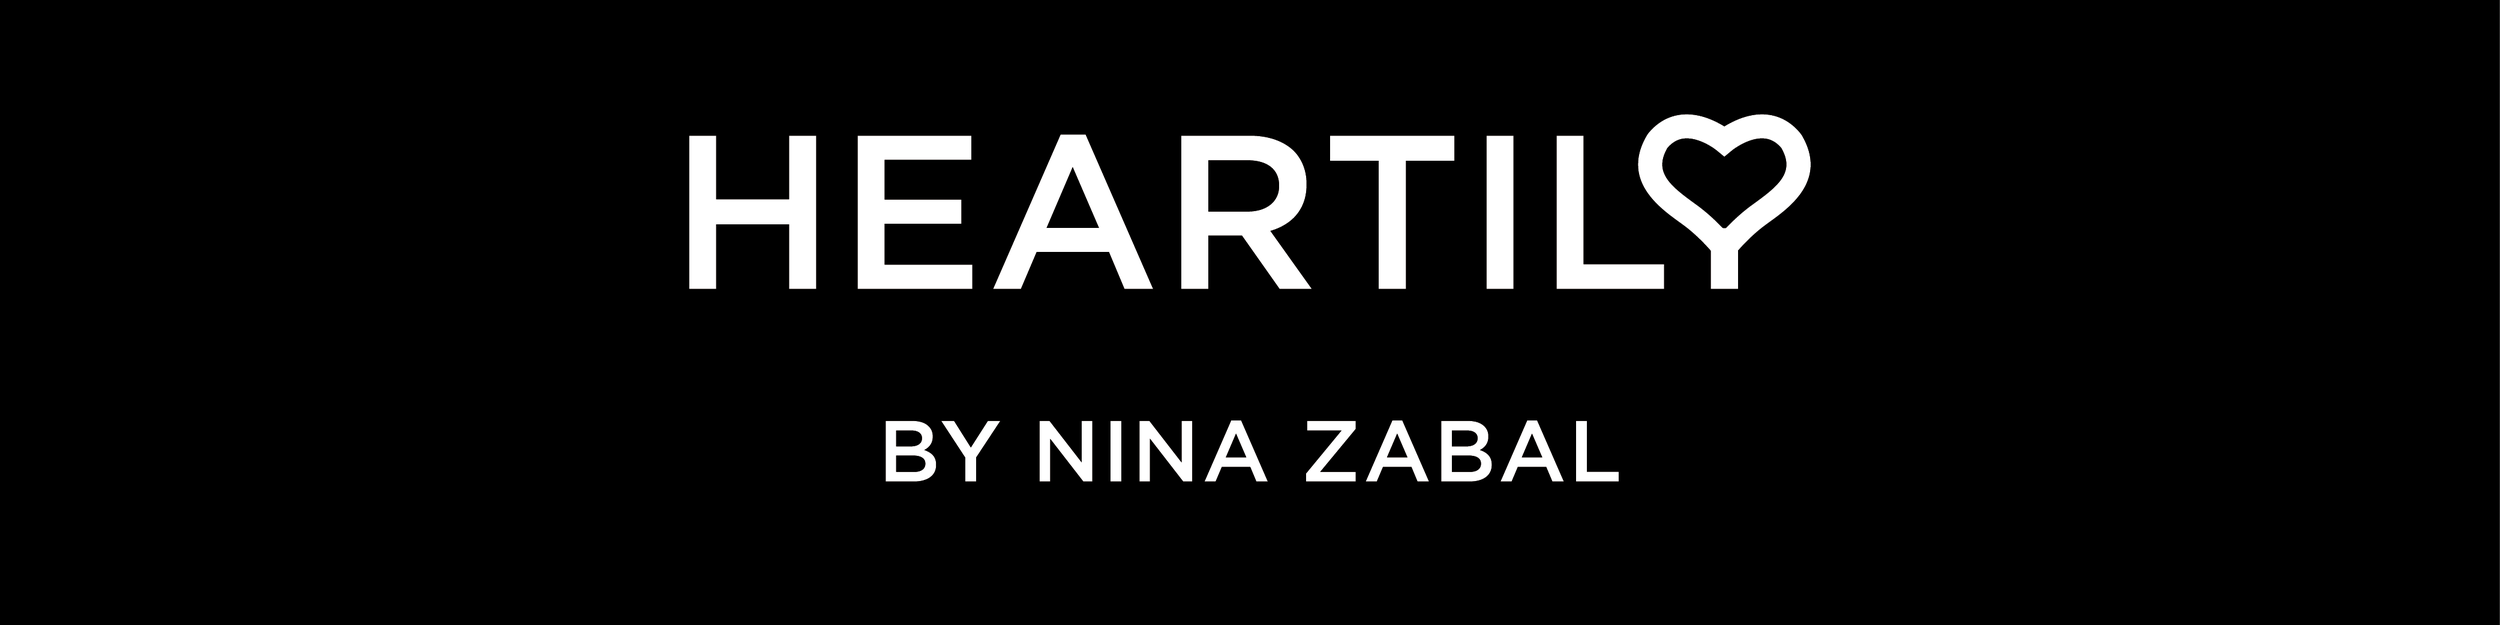 Heartily by Nina Zabal